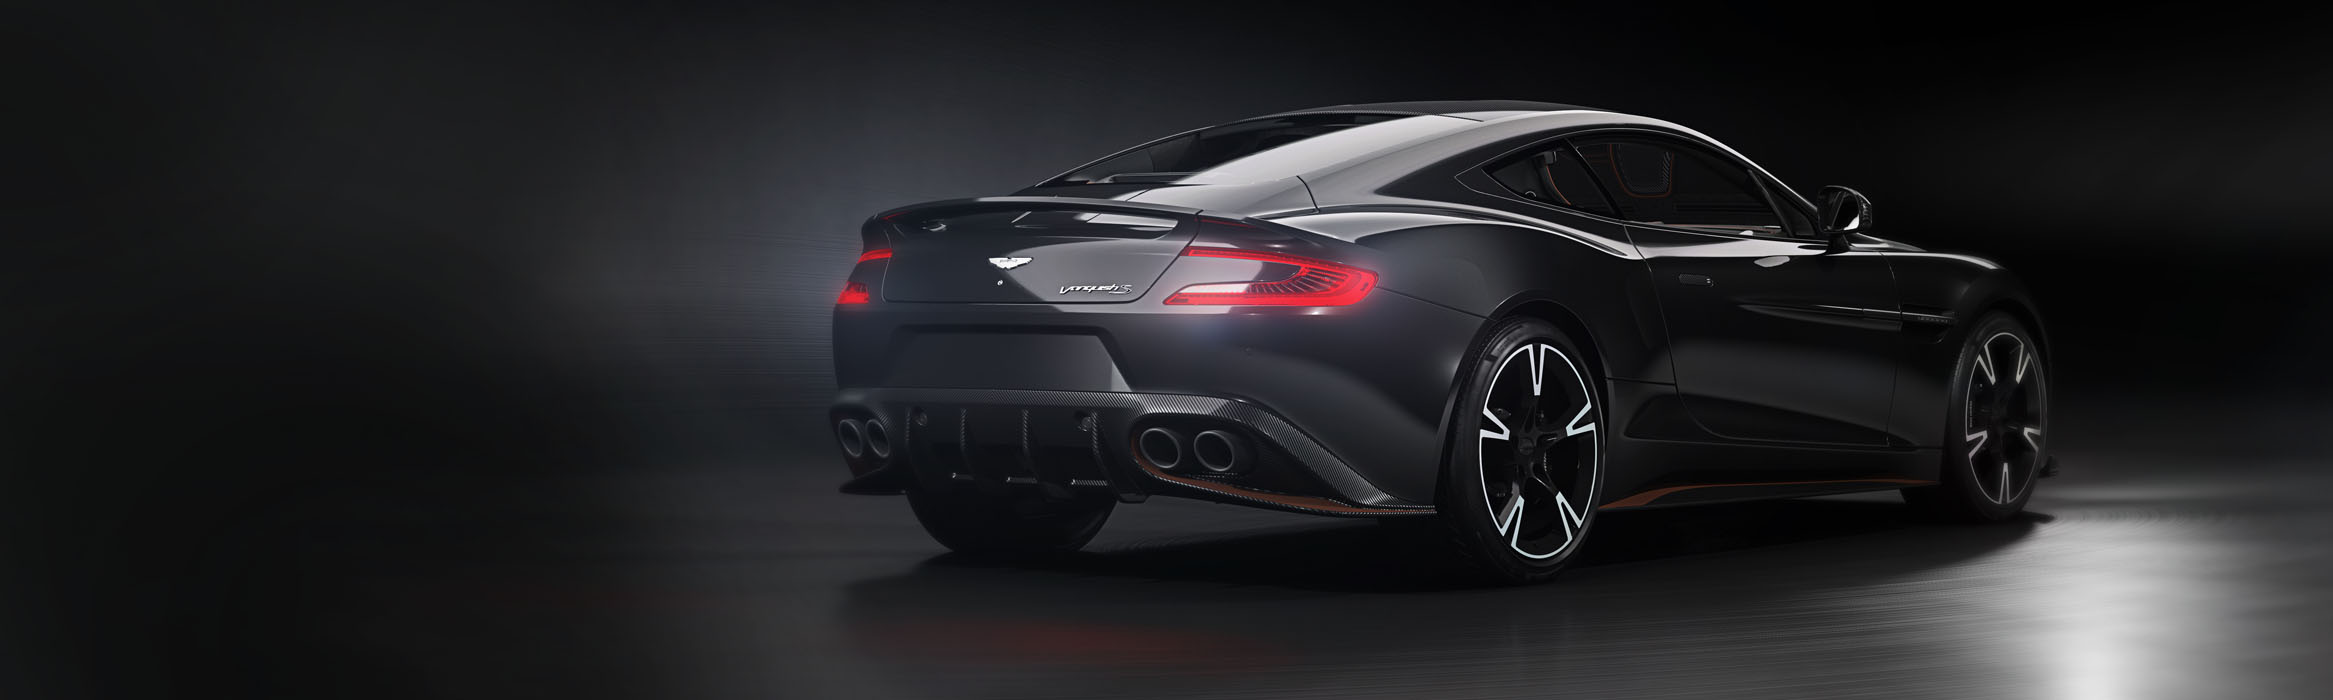 Aston Martin Singapore Official Aston Martin Dealer - Aston martin db8 price